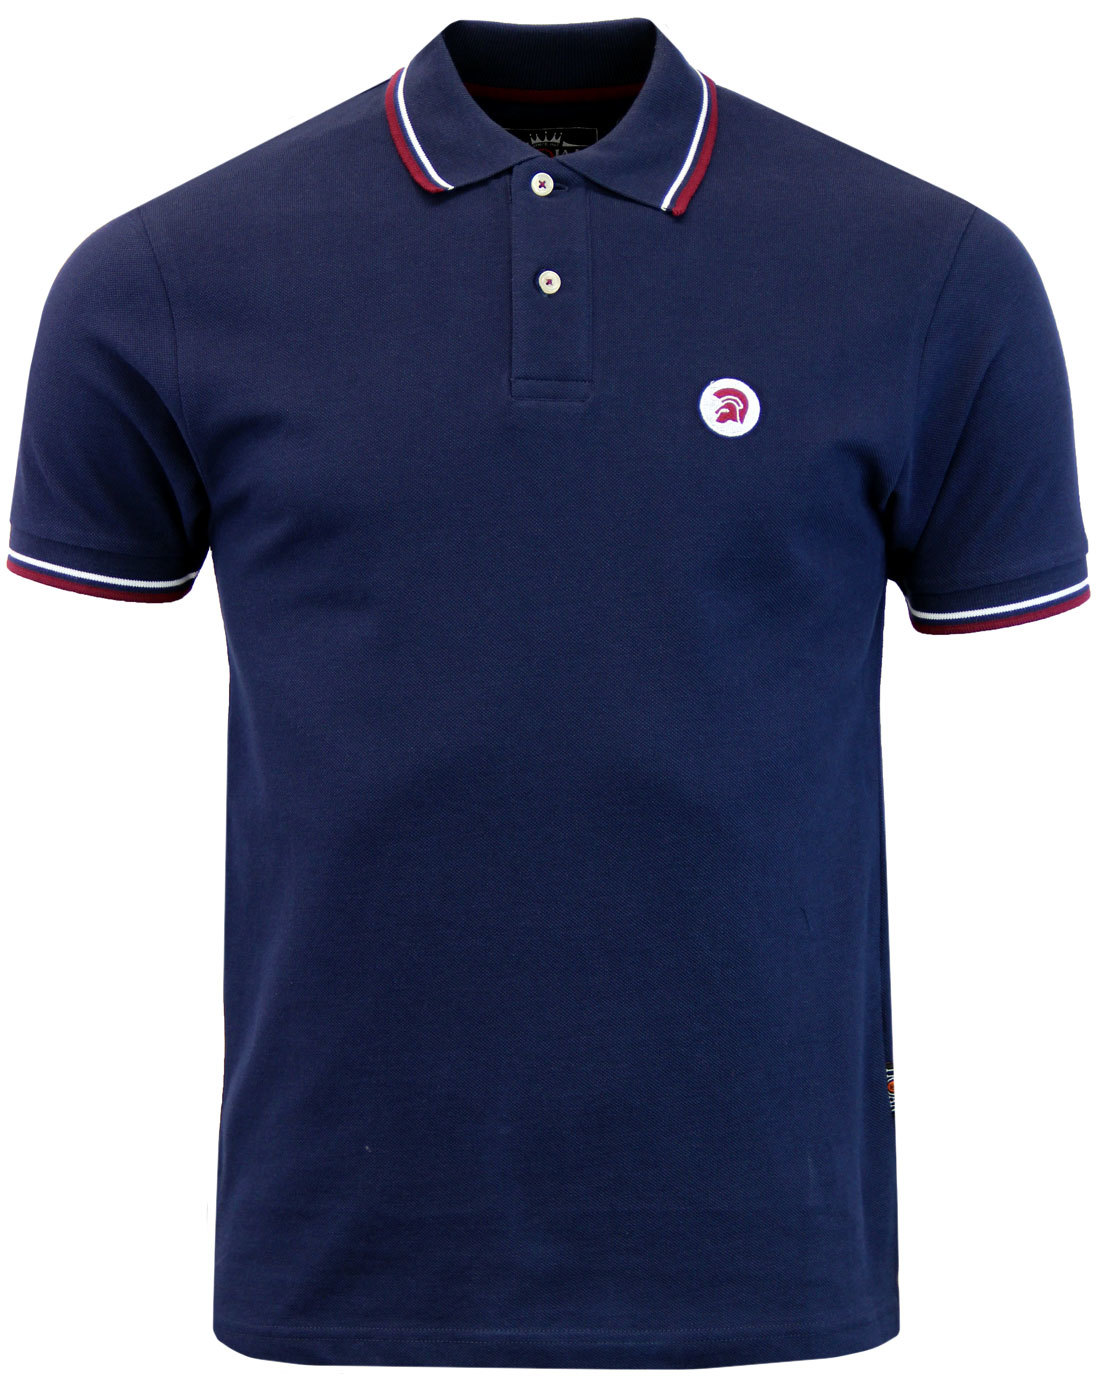 TROJAN RECORDS Mens Retro Mod Ska Tipped Polo NAVY